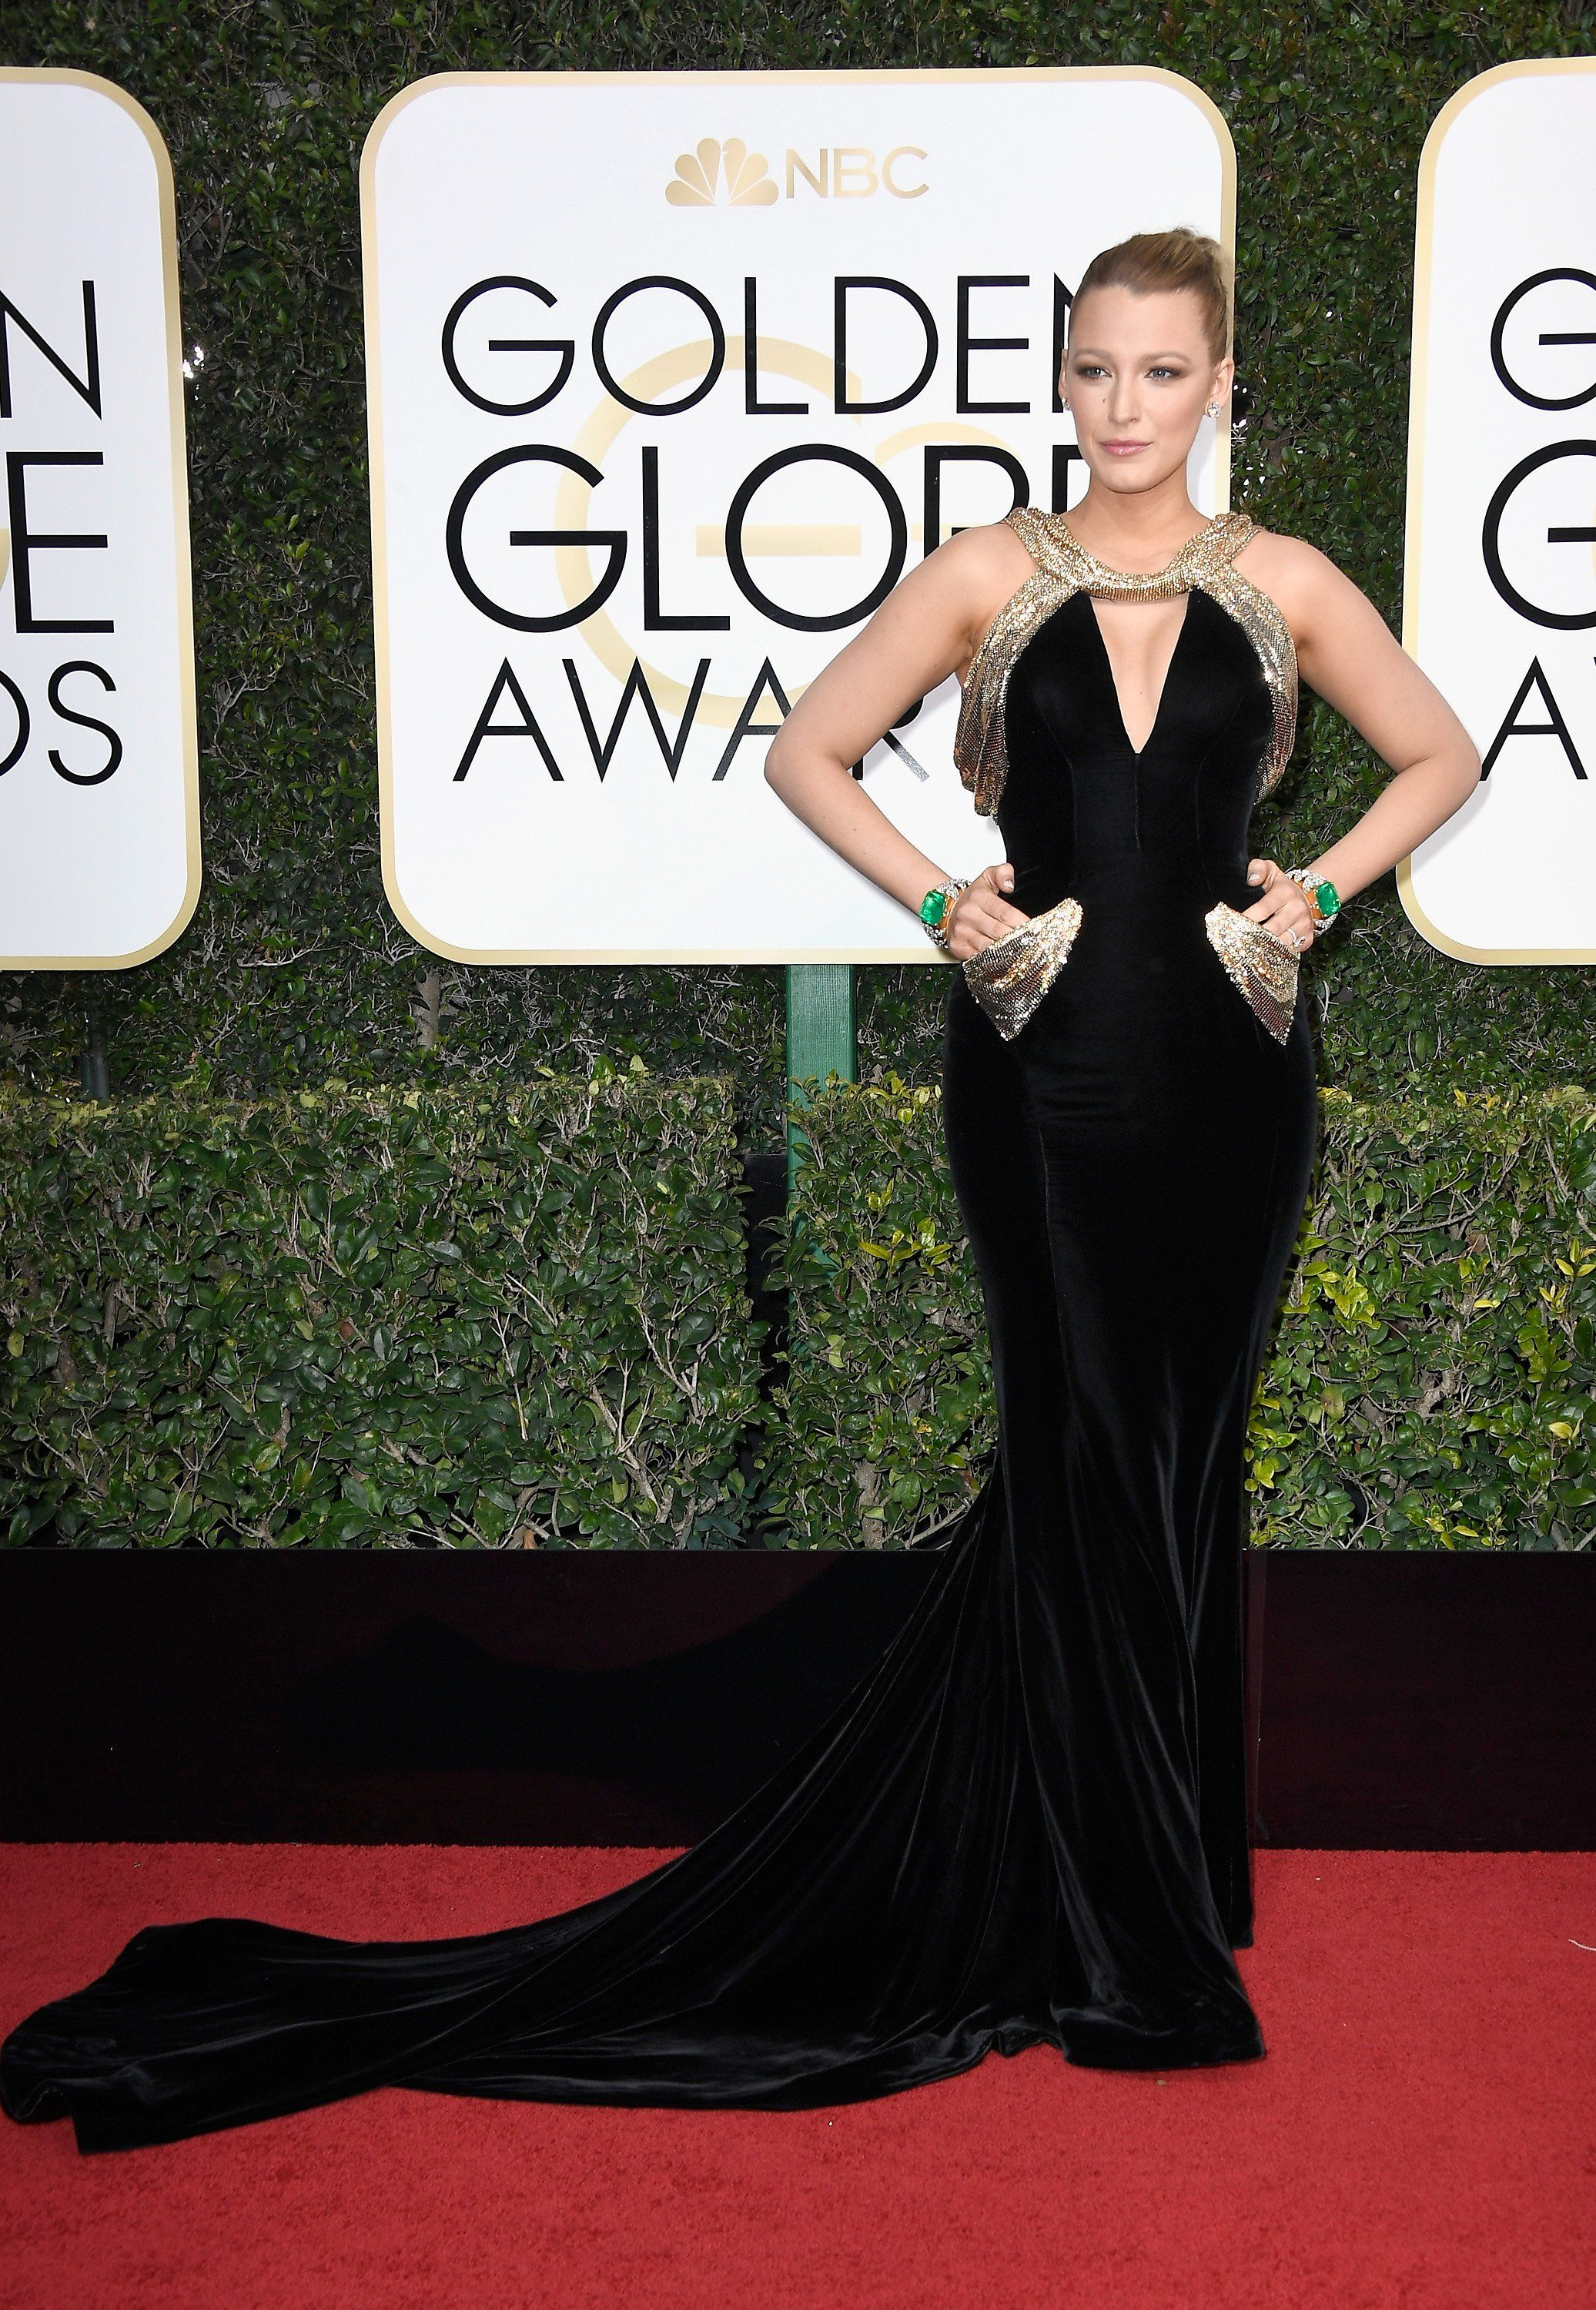 de8ecfc6431a Golden Globes 2017: The Best Dressed Celebrities From the Red Carpet -  Blake Lively in an Atelier Versace dress and Lorraine Schwartz jewelry